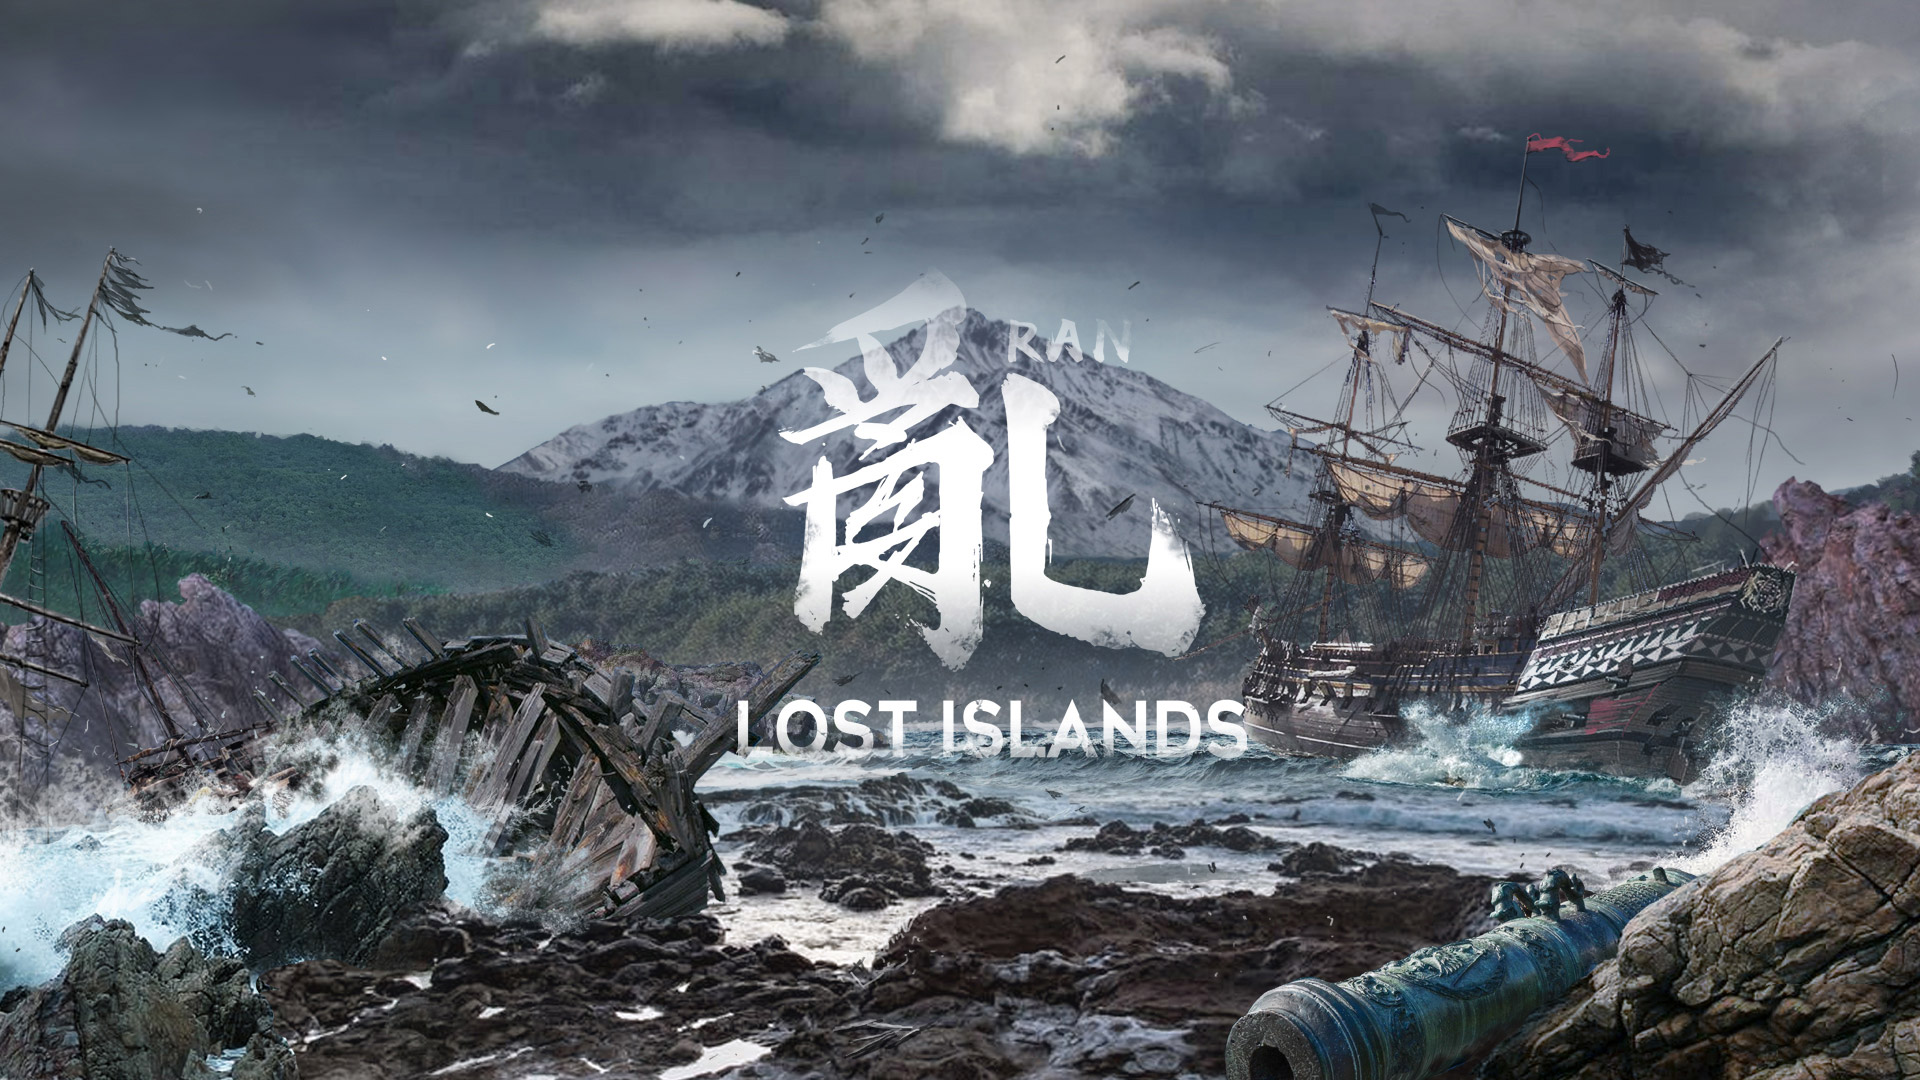 Free RAN: Lost Islands Wallpaper in 1920x1080